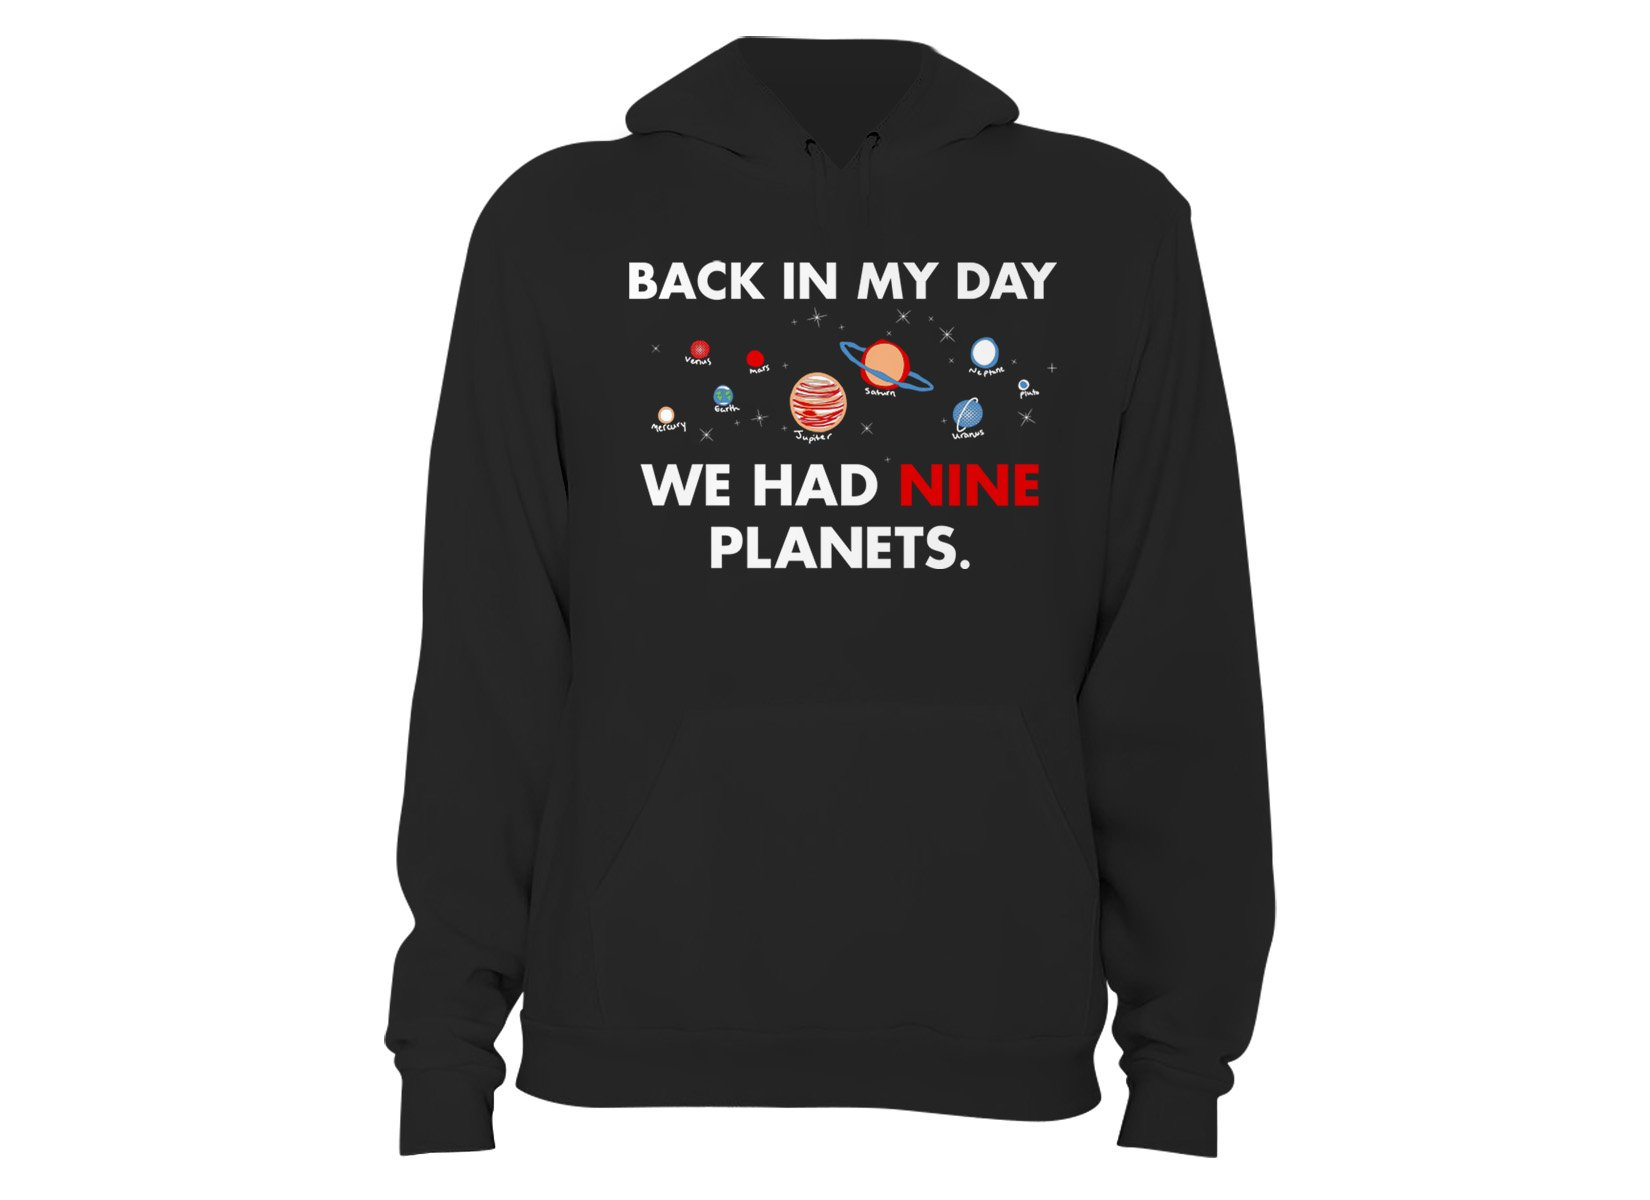 Back In My Day We Had Nine Planets on Hoodie